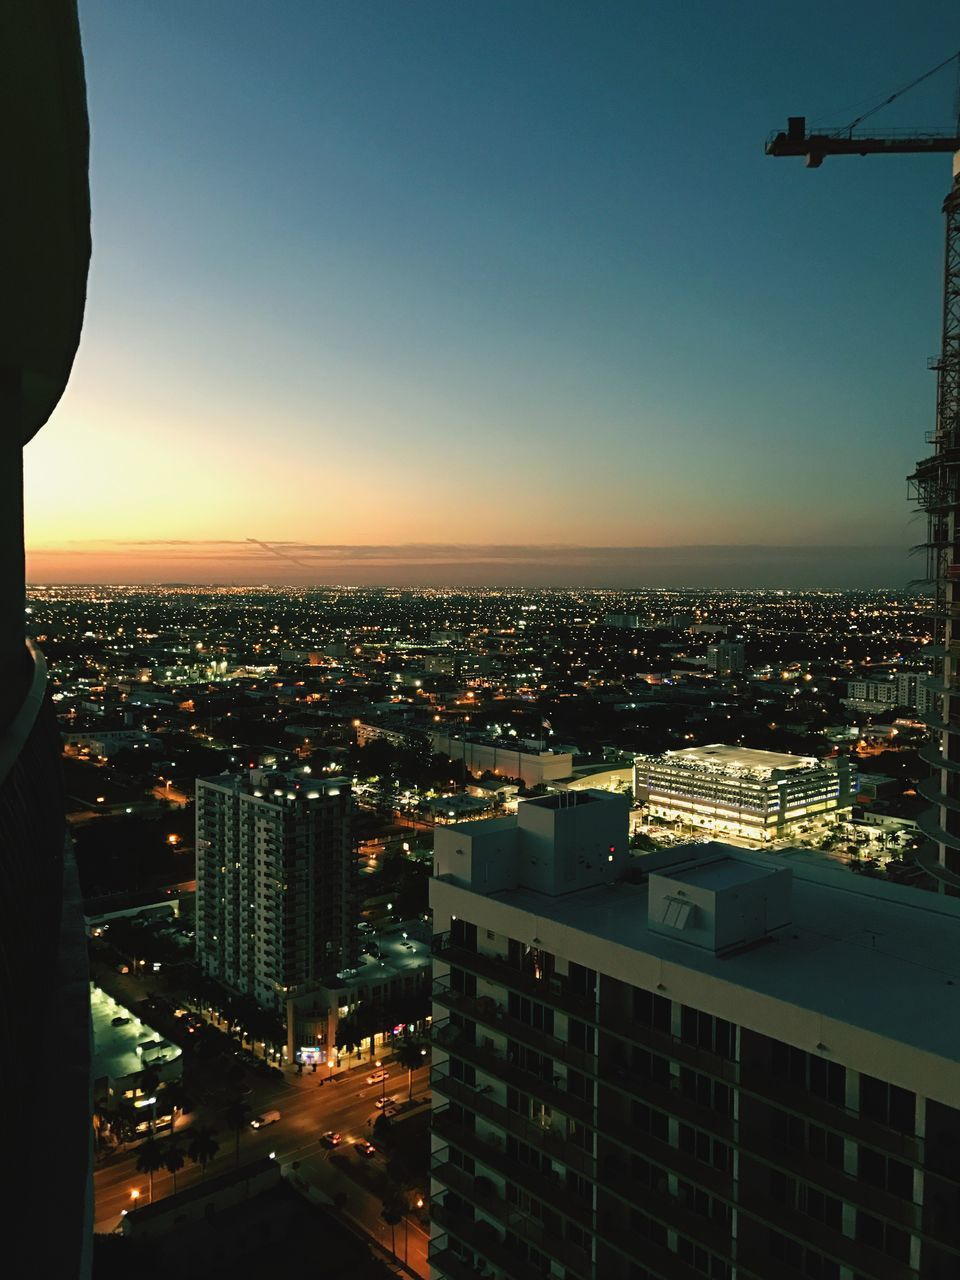 cityscape, city, architecture, building exterior, built structure, sky, no people, skyscraper, outdoors, modern, sunset, illuminated, clear sky, day